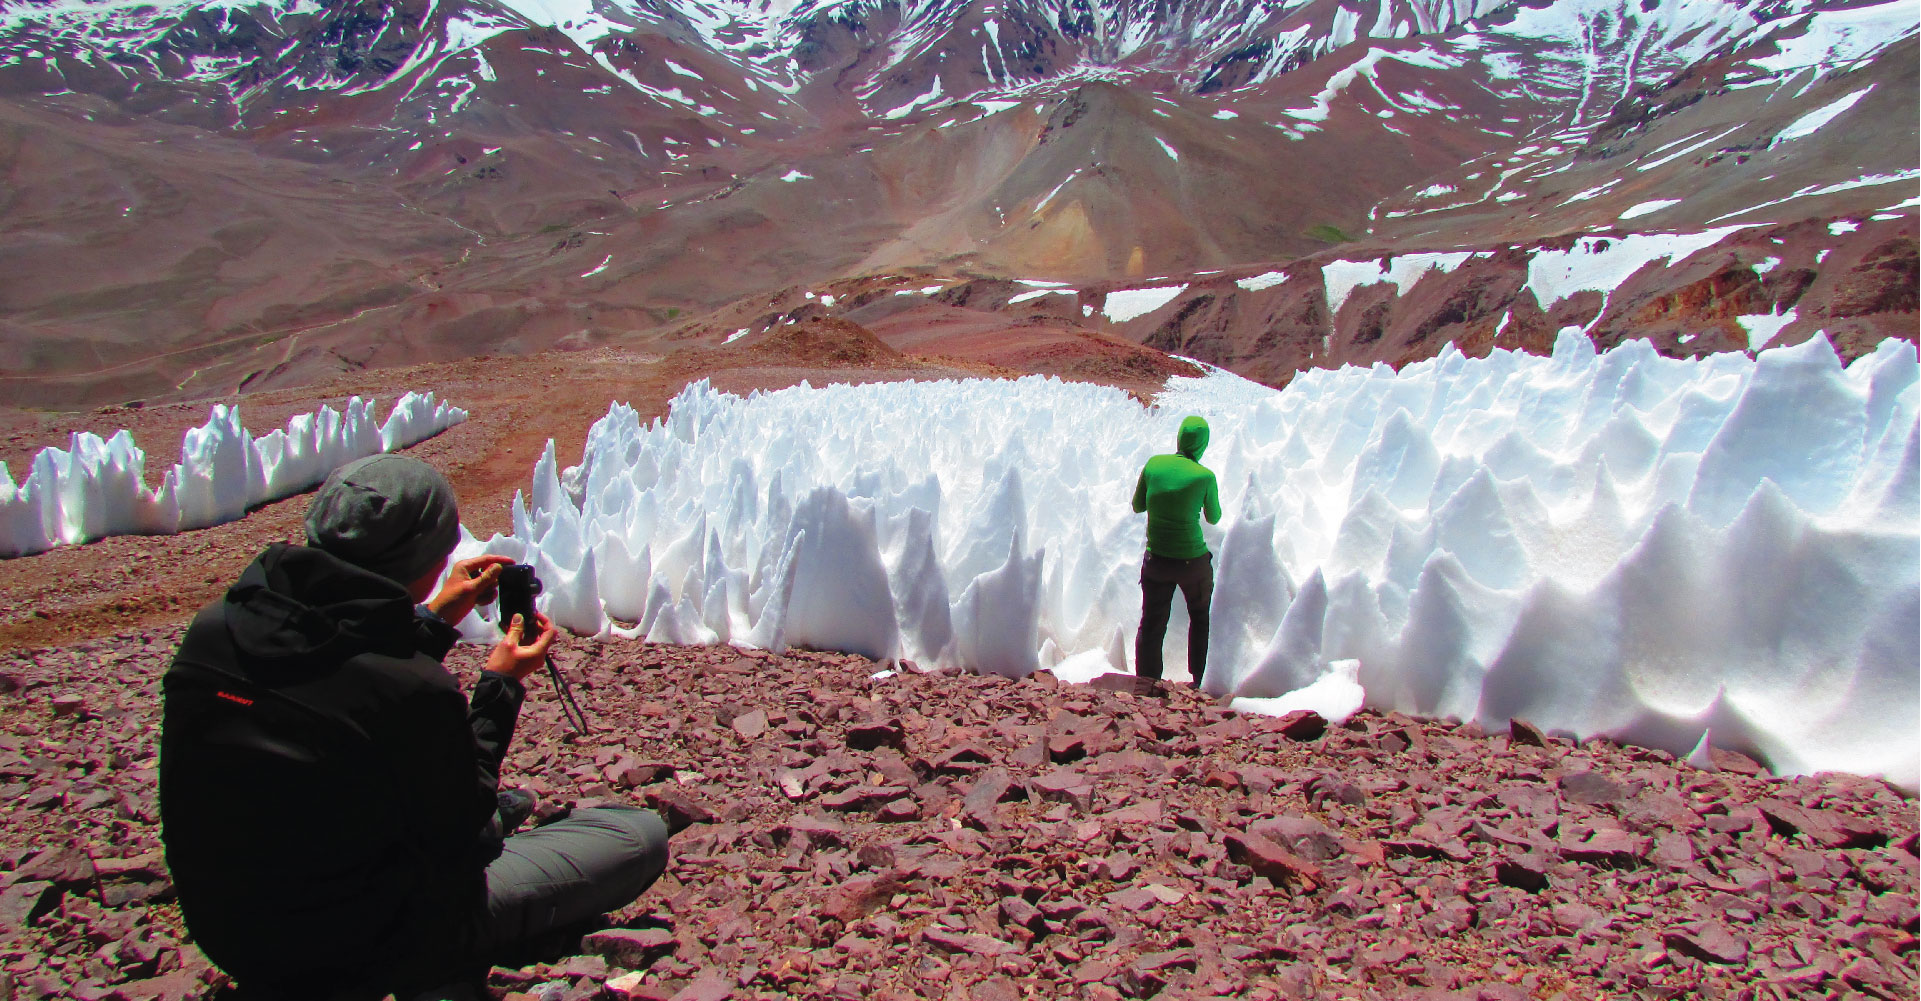 Venture into the Andes and marvel at the unique landscapes